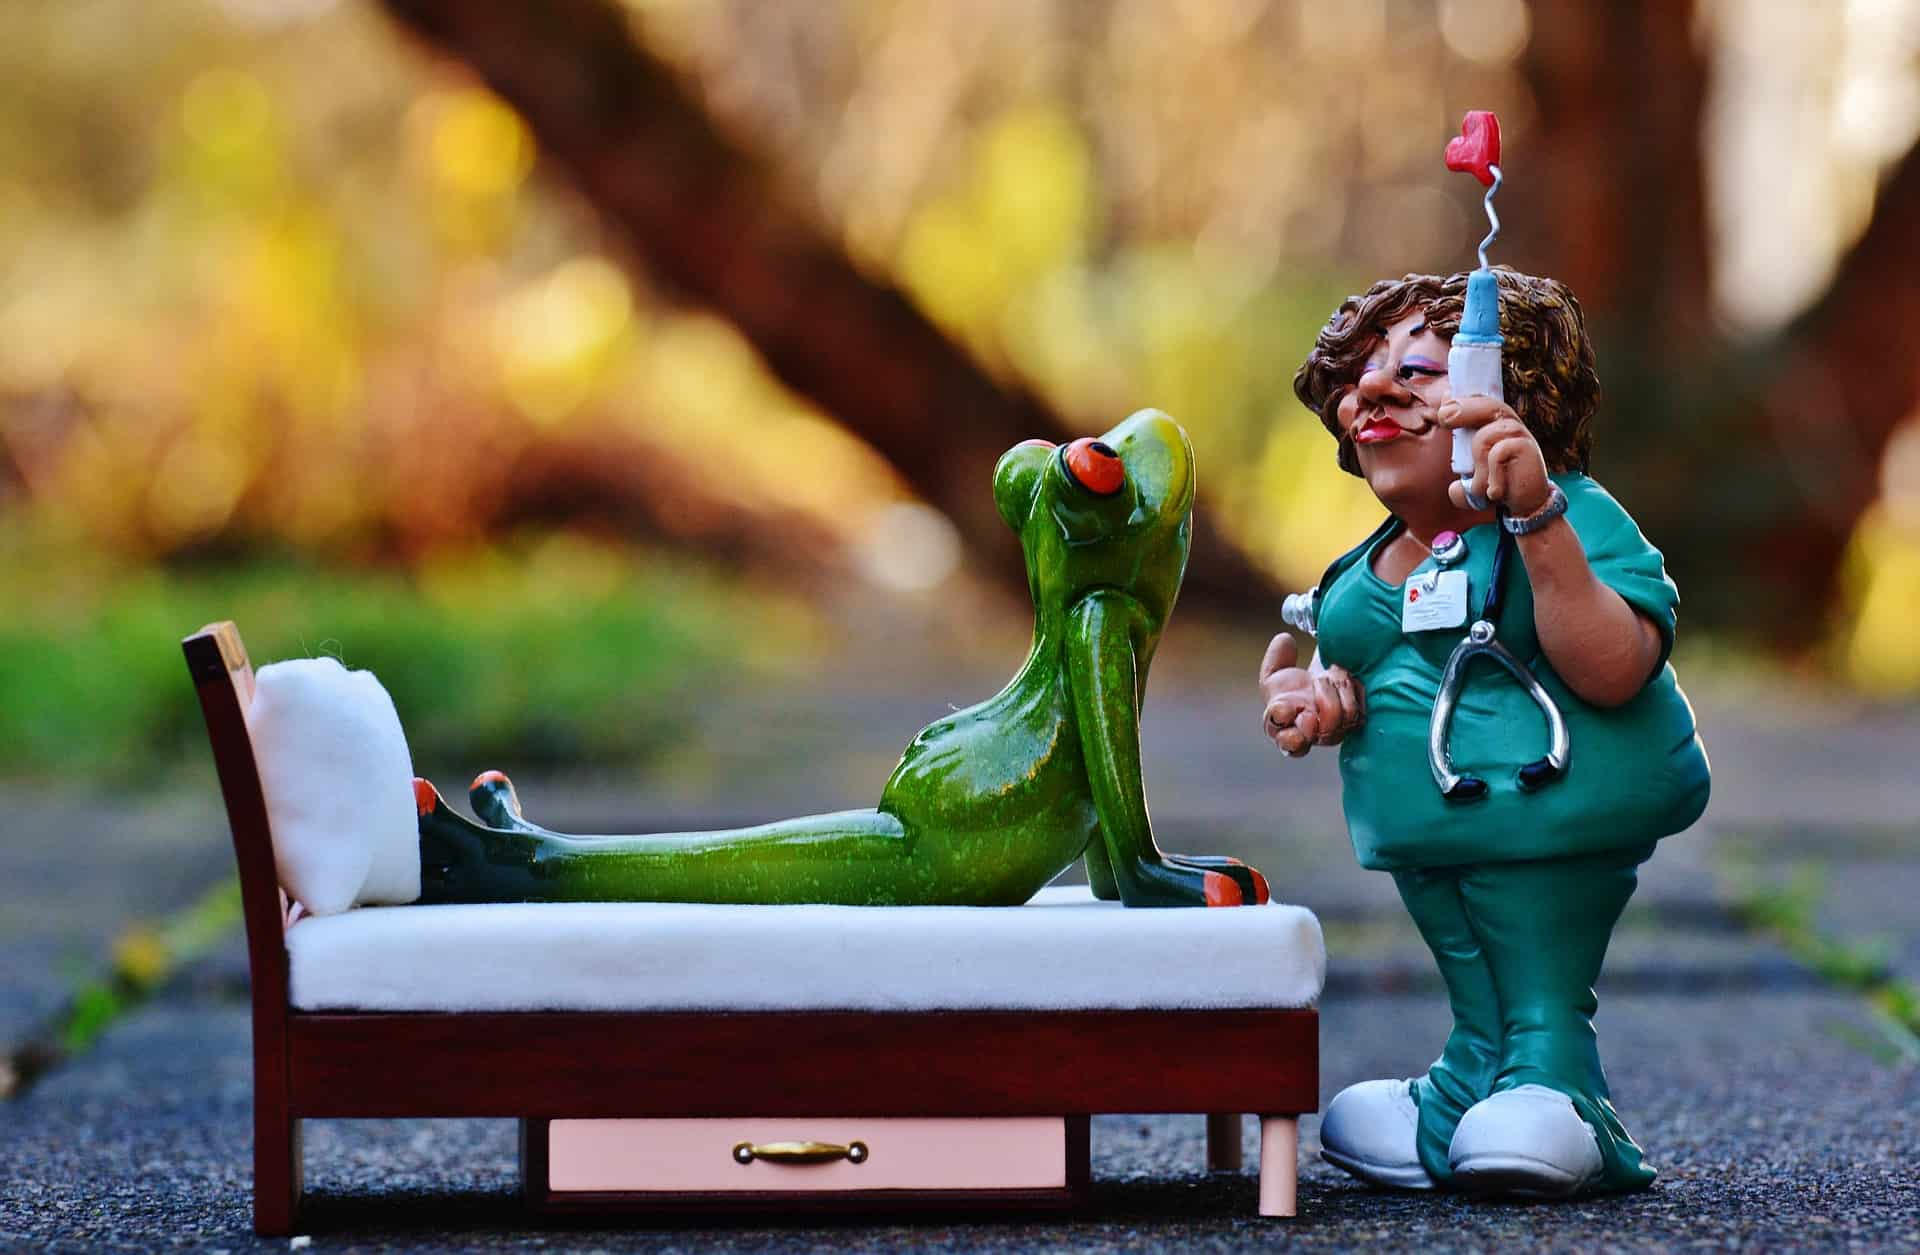 Nurse and frog small sculpture